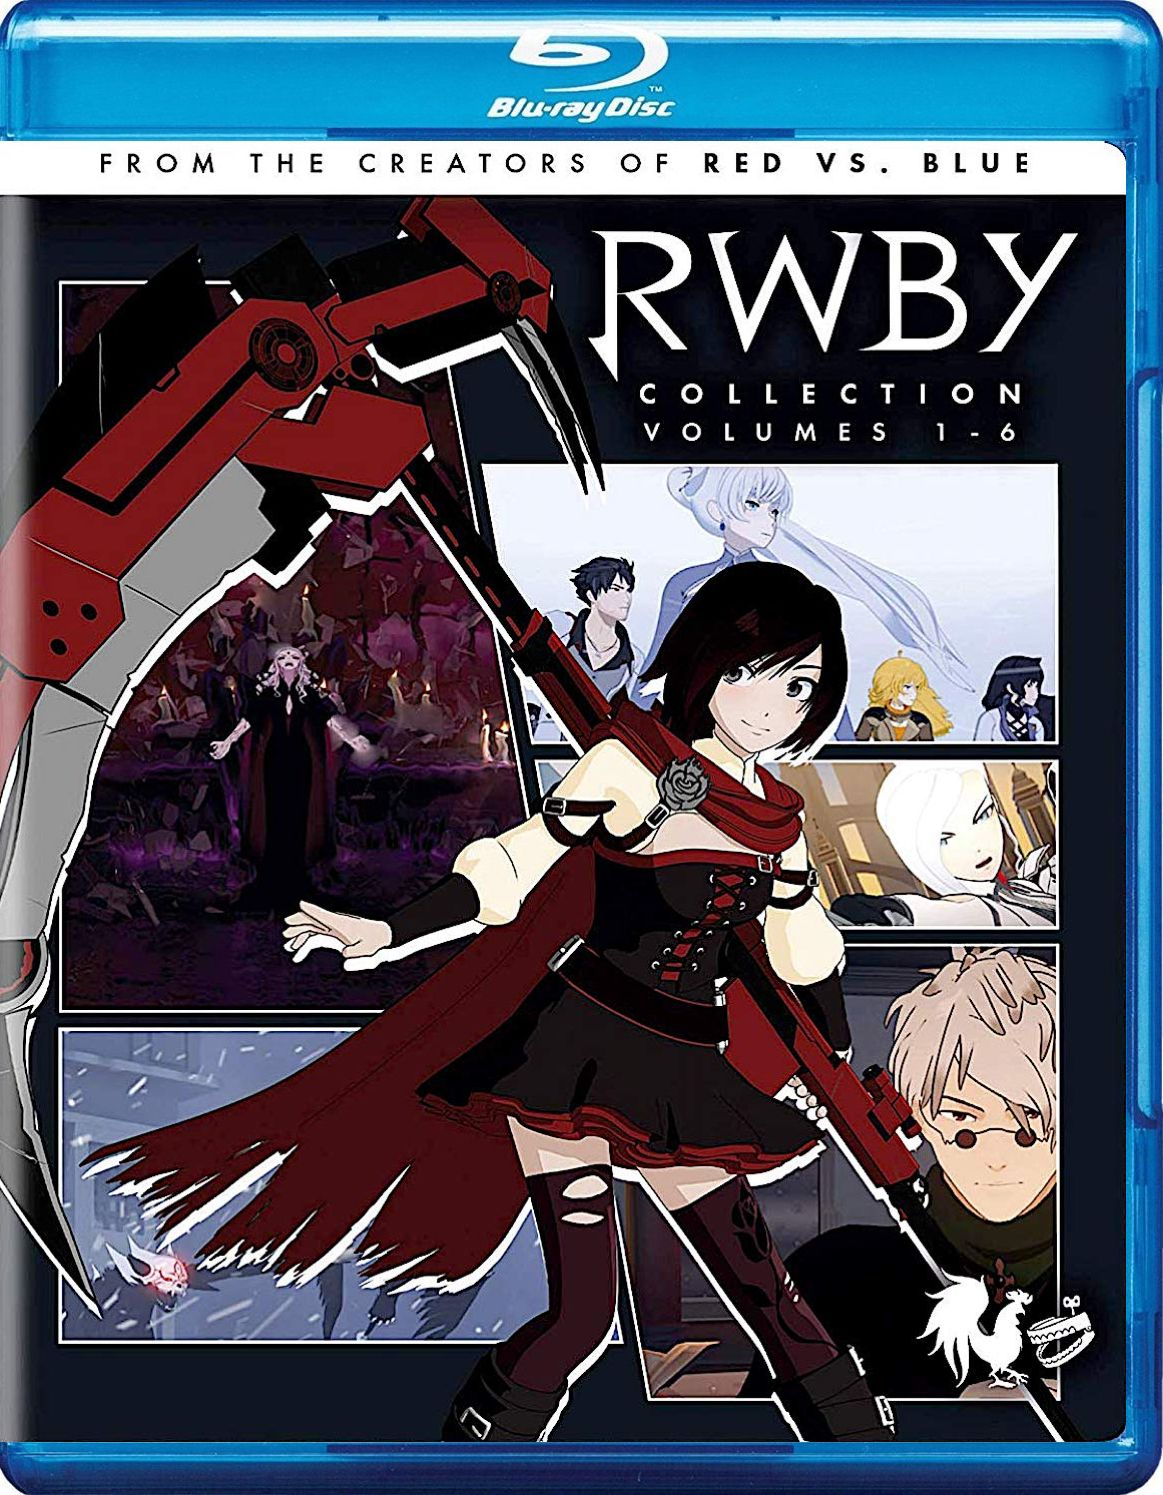 RWBY COLLECTION VOLUMES 16 BLURAY SET (CINEDIGM) Blu